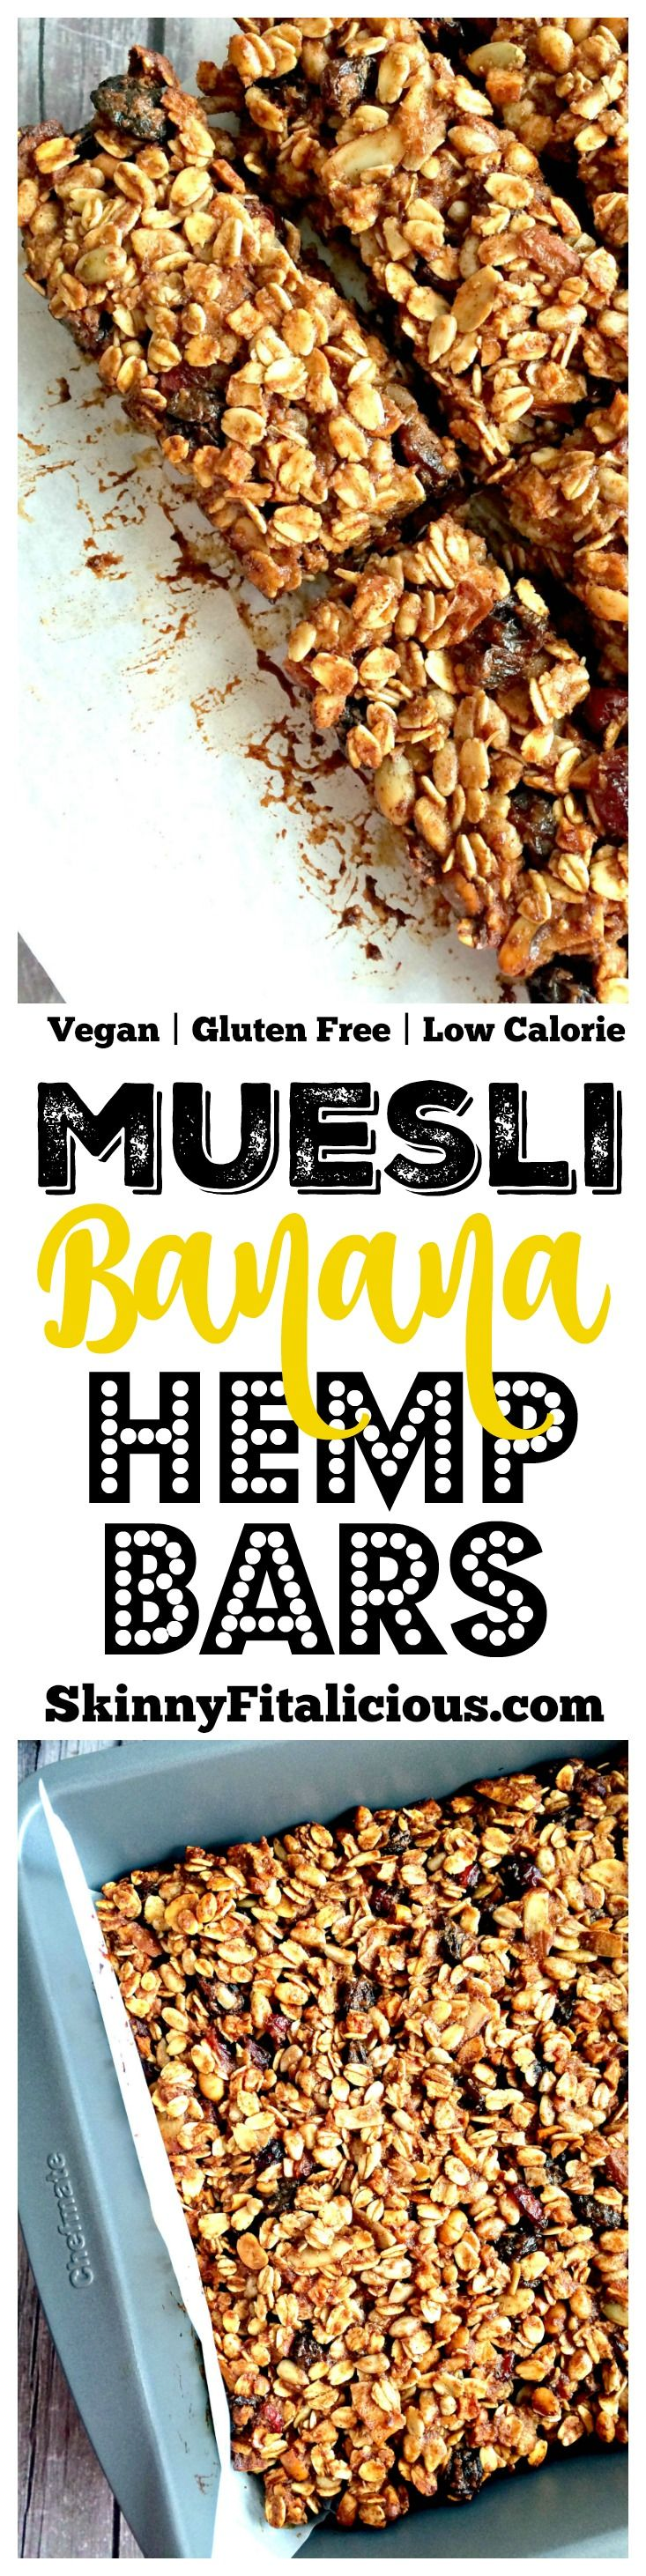 Homemade baked Muesli Banana Hemp Bars made with bananas, applesauce, hemp and muesli granola. A soon to be staple in your weekly meal prep, these easy snack bars are ones the whole family will love! Gluten Free + Low Calorie + Vegan